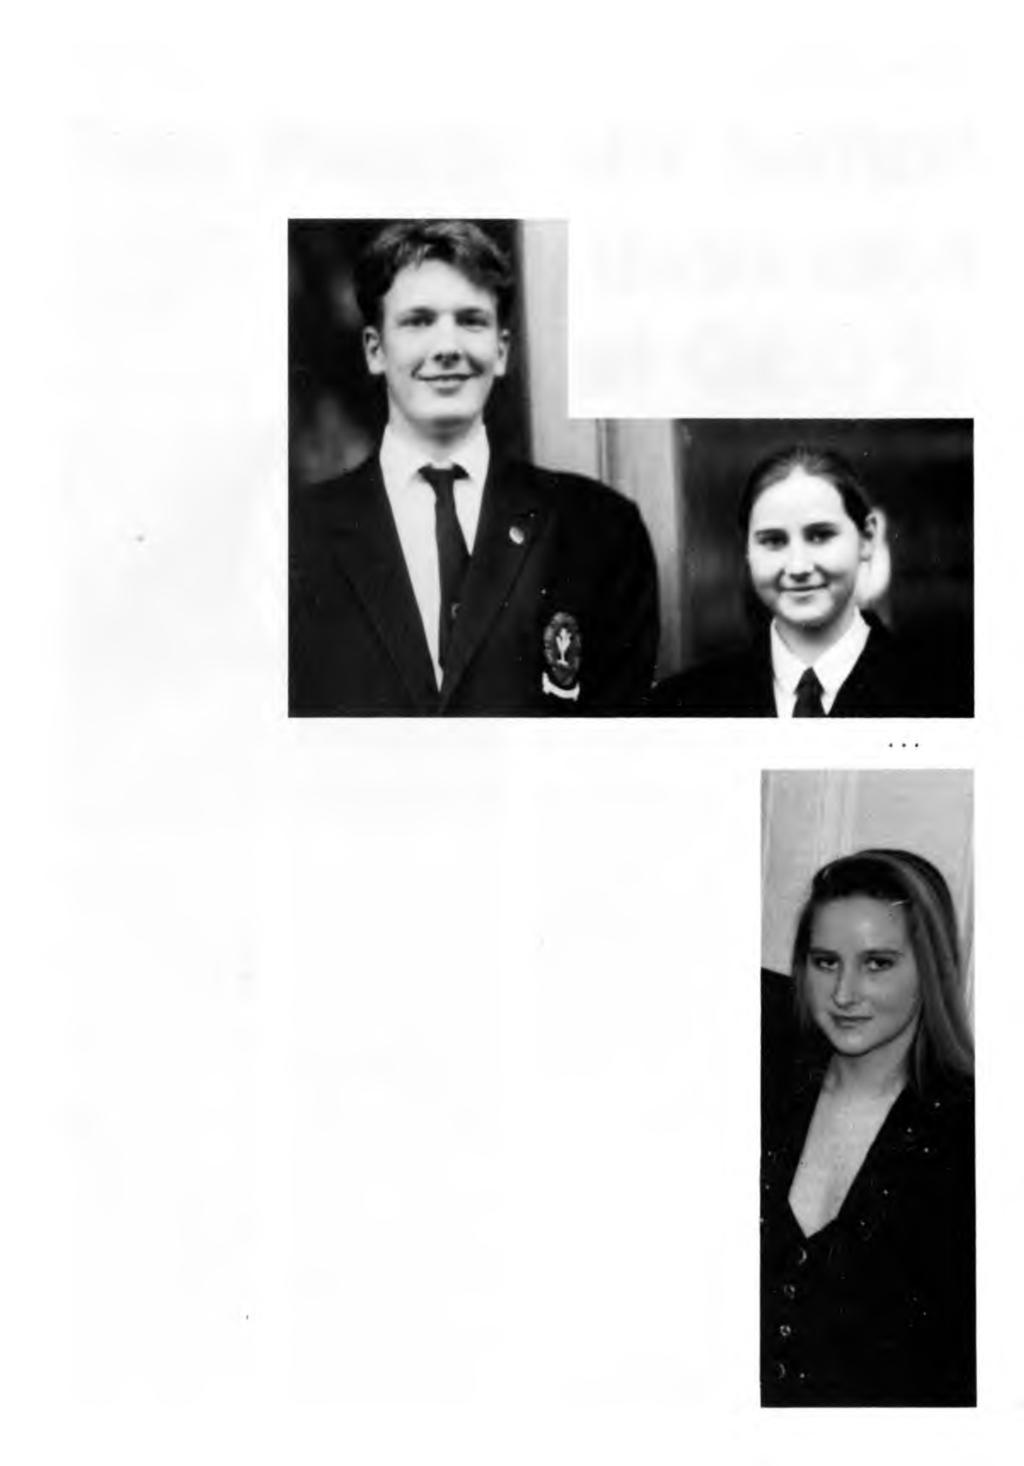 AUTUMN 1994 MAGISTER - PAGE 23 Two Heads are better Magister talks to William Coleman and Virginia Hayton, Head Boy and Head Girl 93/94 than one at QEGS!